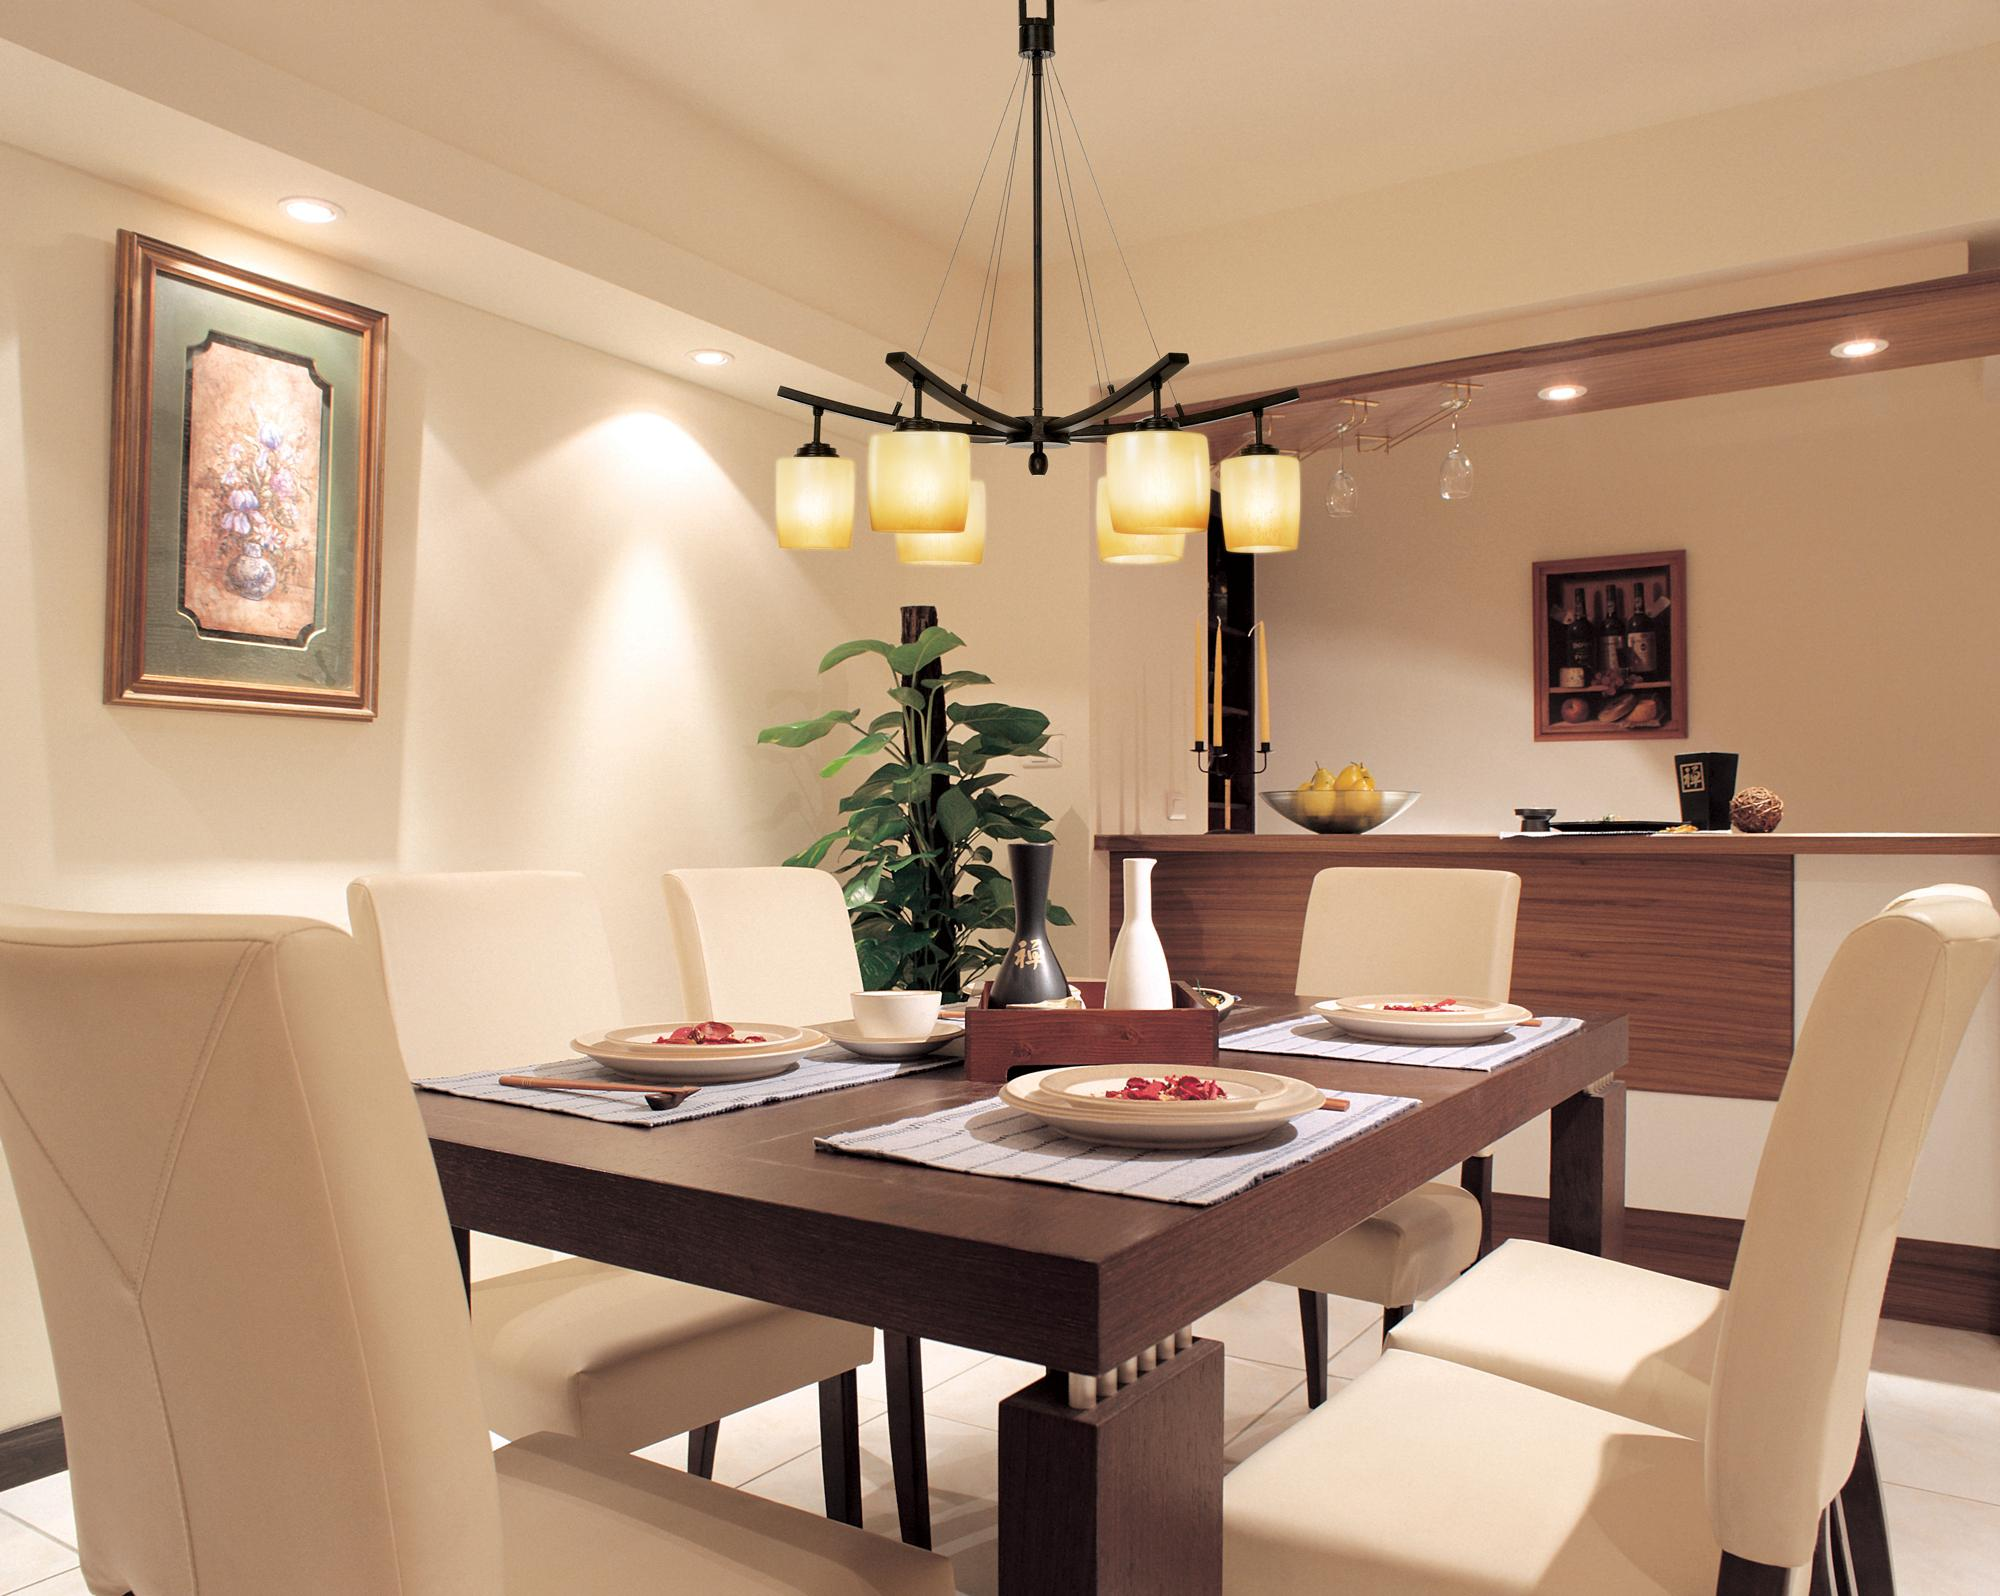 Ceiling Dining Room Lights U2013 Bright Dinners Owe Much To Lighting Ambience